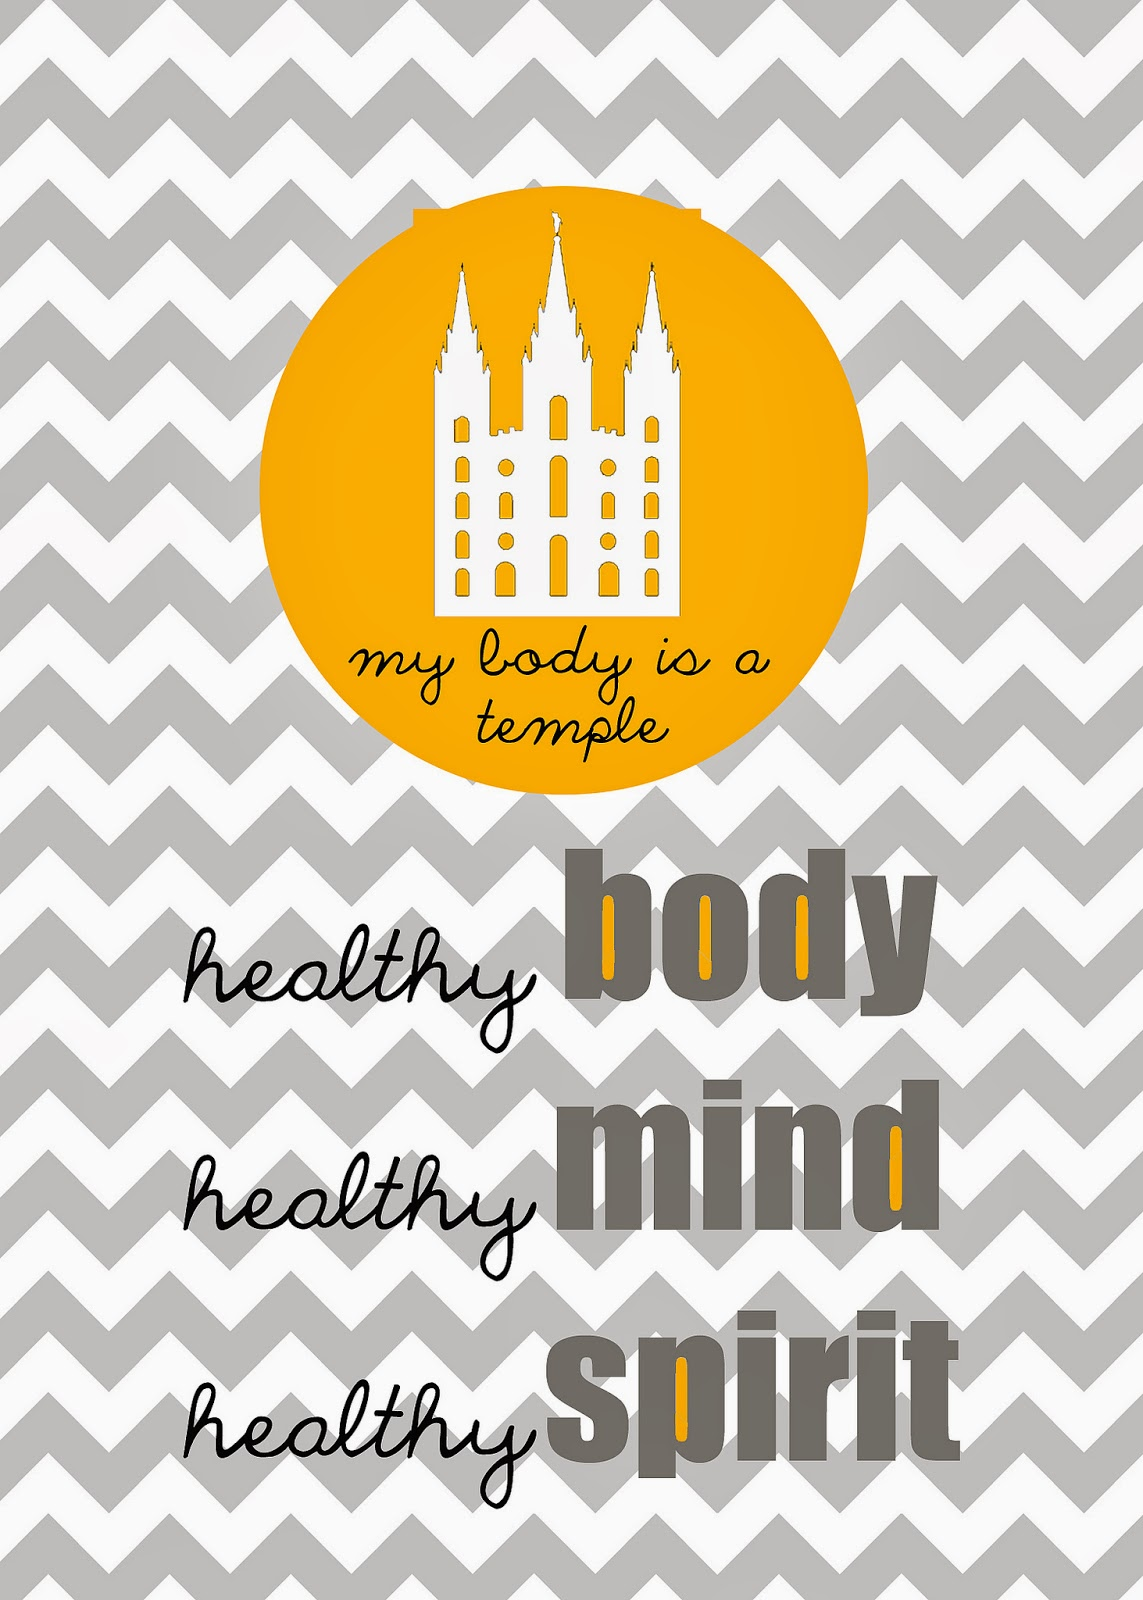 the body is a temple Depicts the dangers of harmful habits and substances.